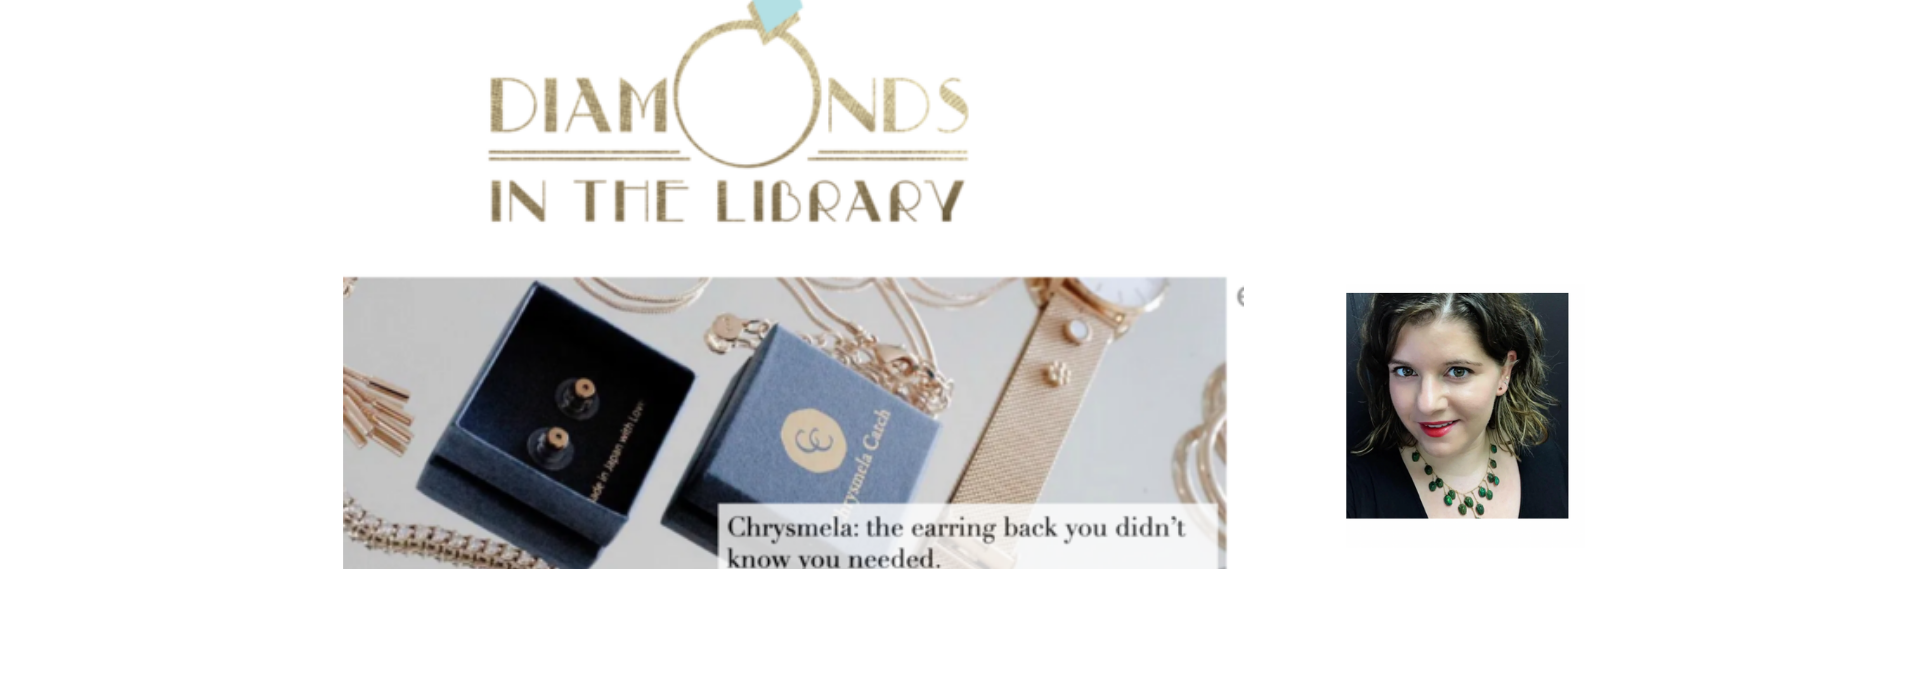 Jewelry industry blogger Diamonds In The Library tested and reviewed Chrysmela the most secure earring back on her fine jewelry collections of new and antique earrings